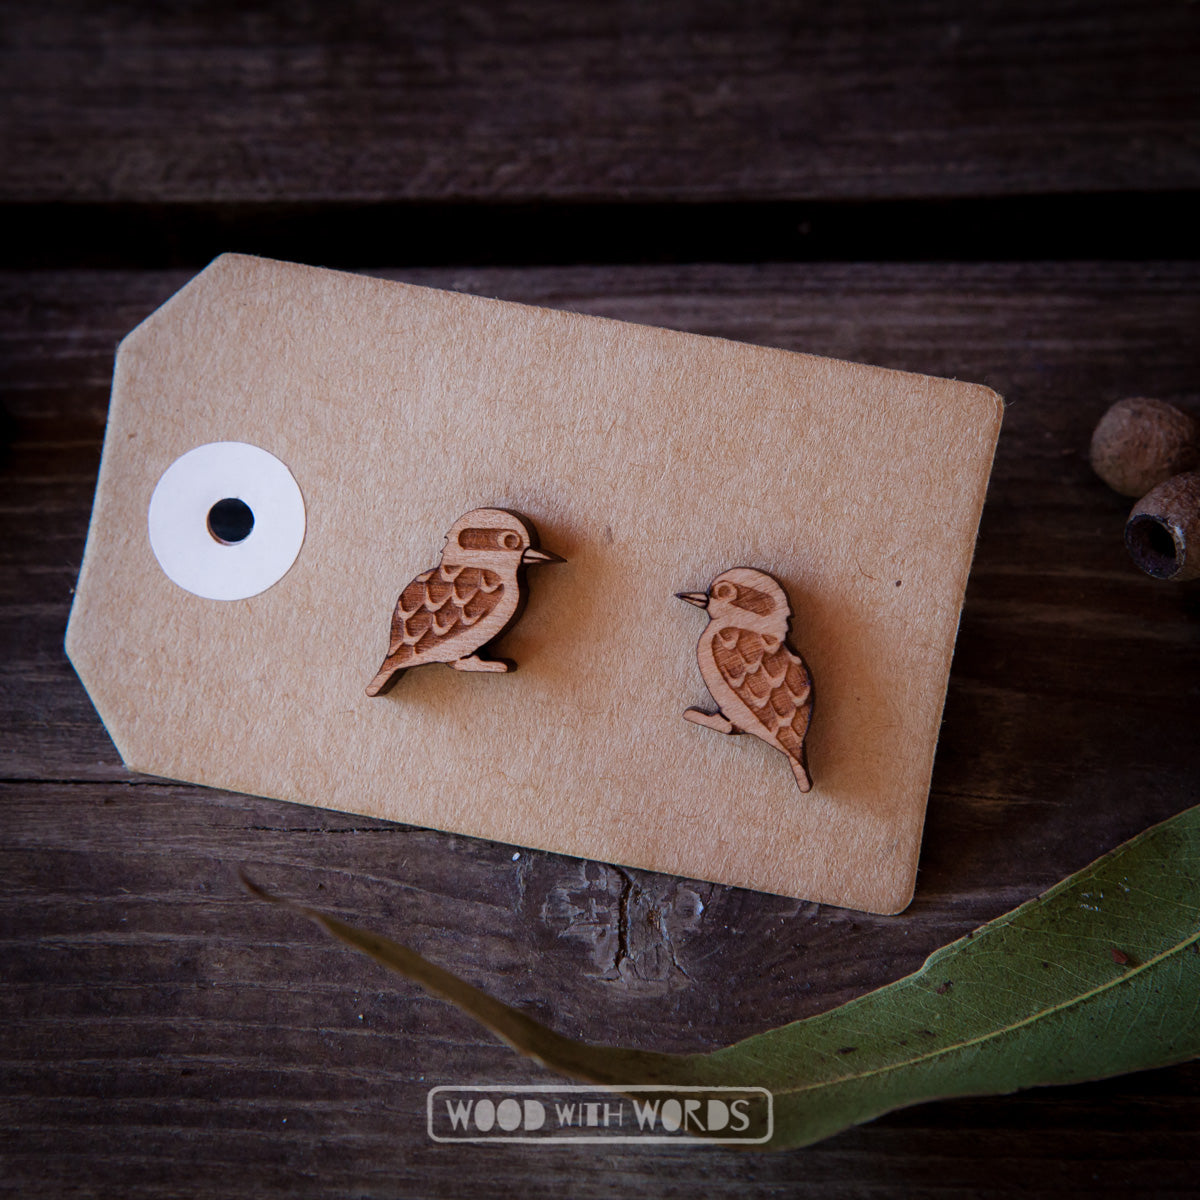 Kookaburra Wooden Stud Earrings - Wood With Words